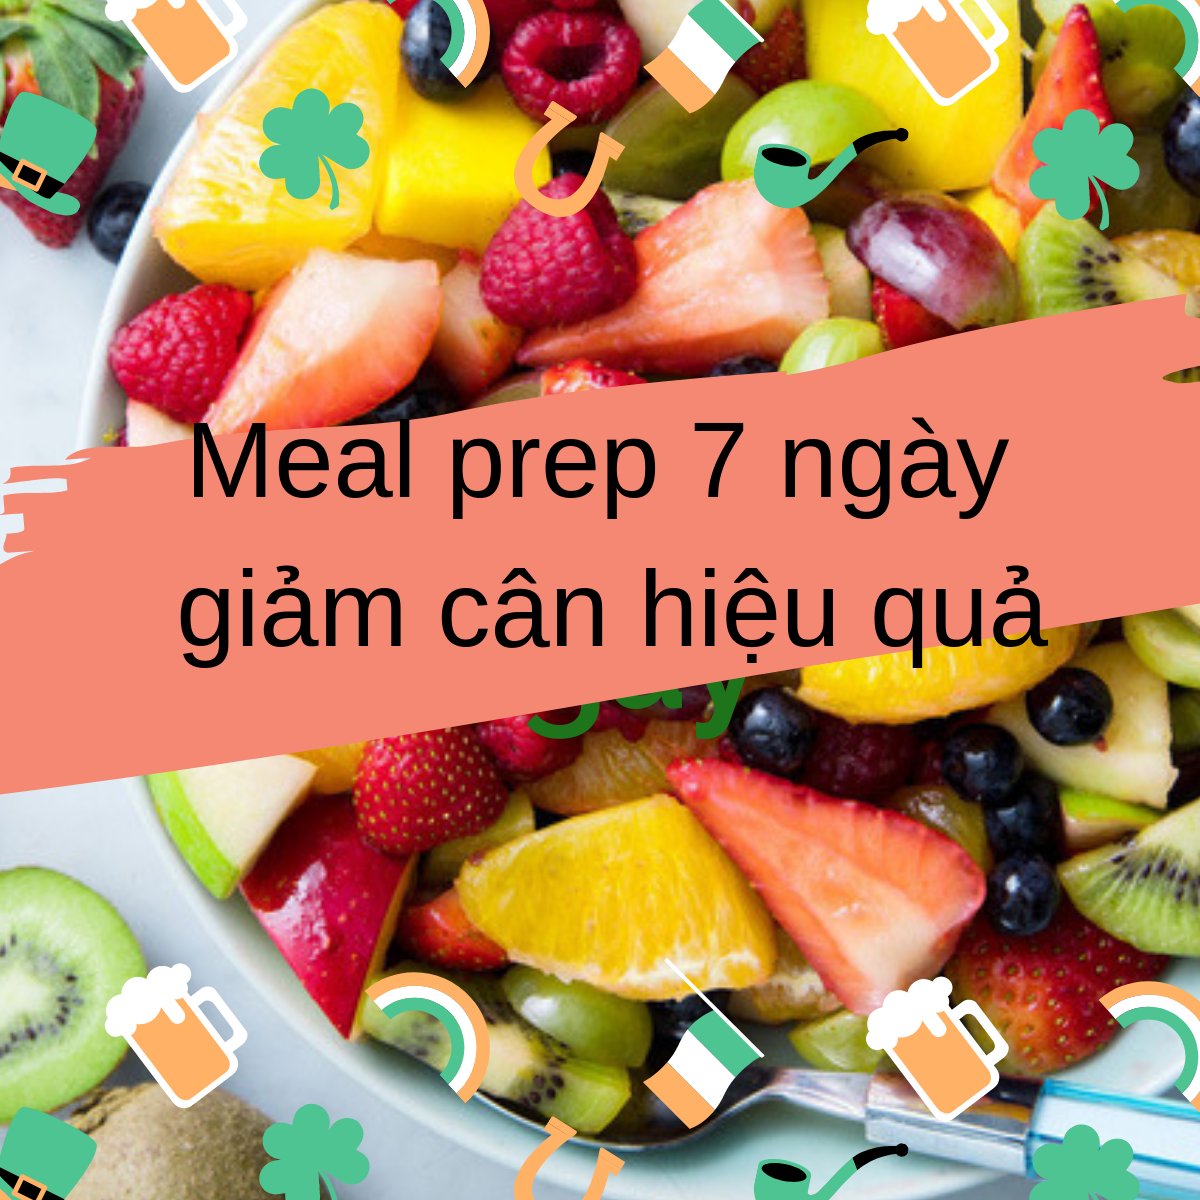 7 days of preparing EAT CLEAN food to lose weight healthily by using Meal Prep method